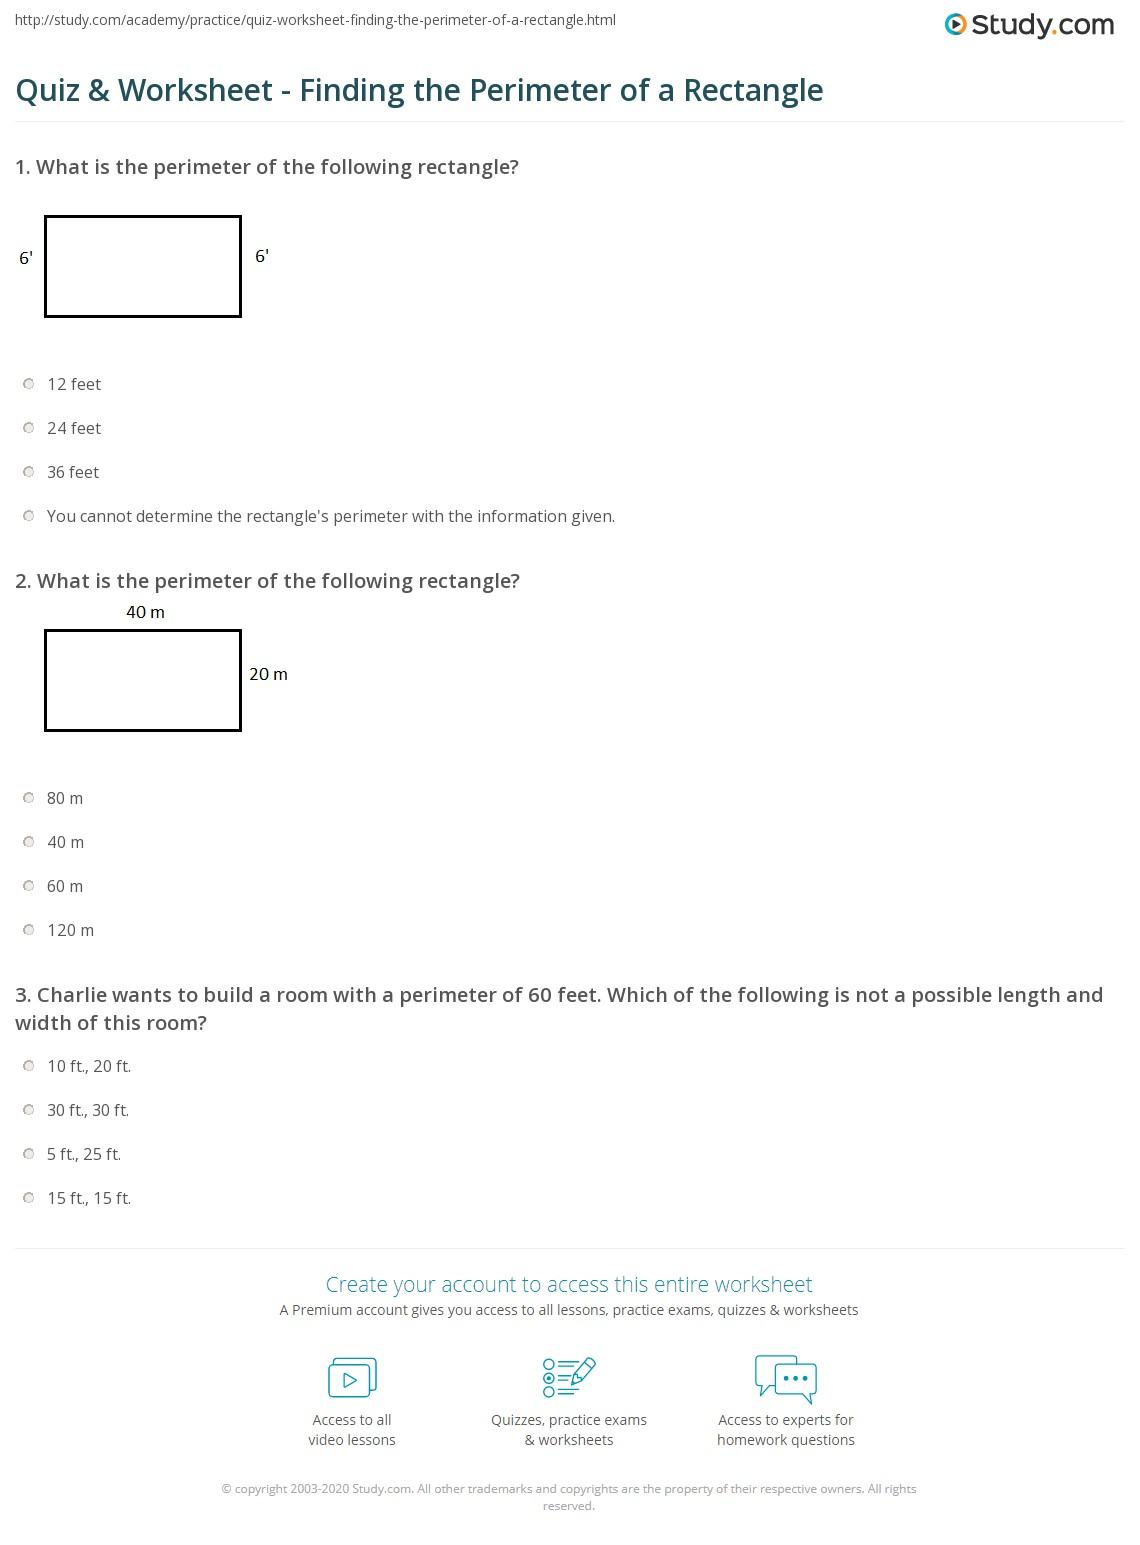 worksheet Perimeter Of A Rectangle Worksheet quiz worksheet finding the perimeter of a rectangle study com print how to find formula example worksheet